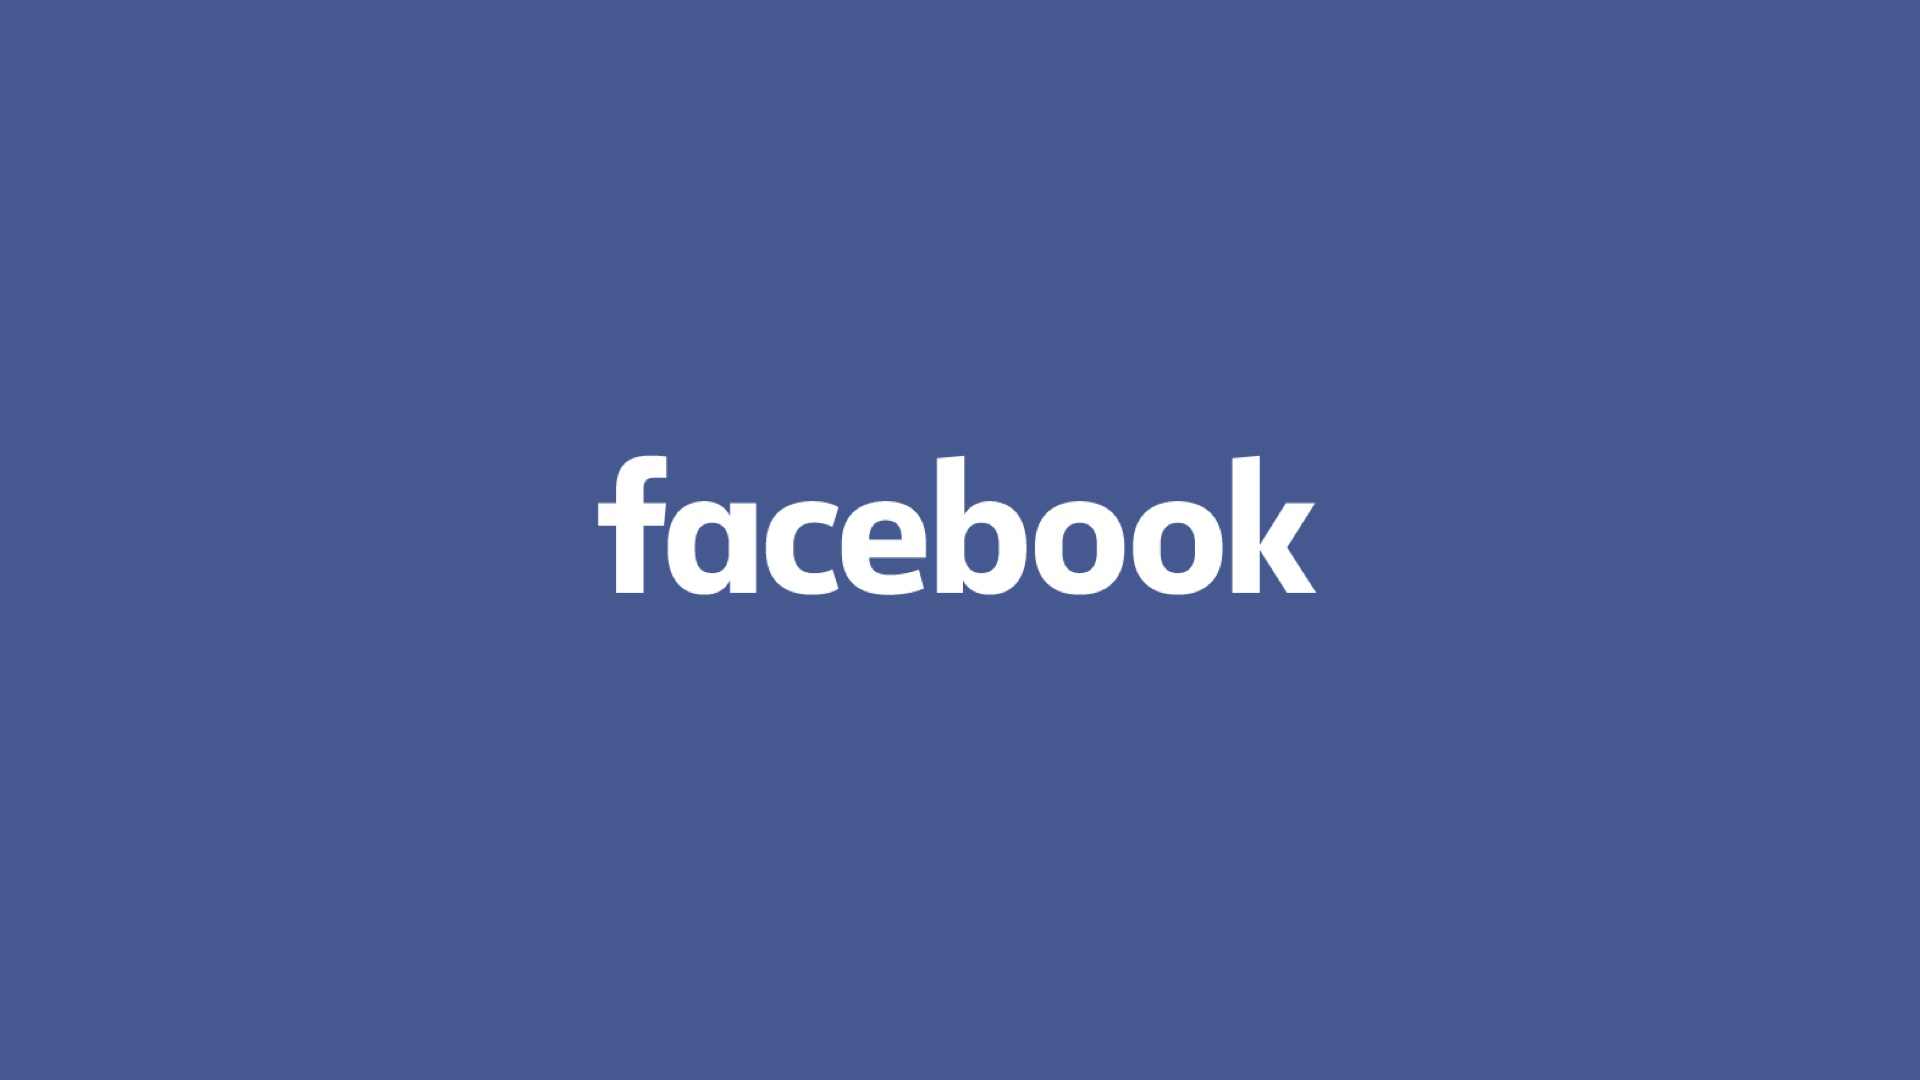 Facebook reportedly has a smartwatch with detachable display and cameras - htxt.africa